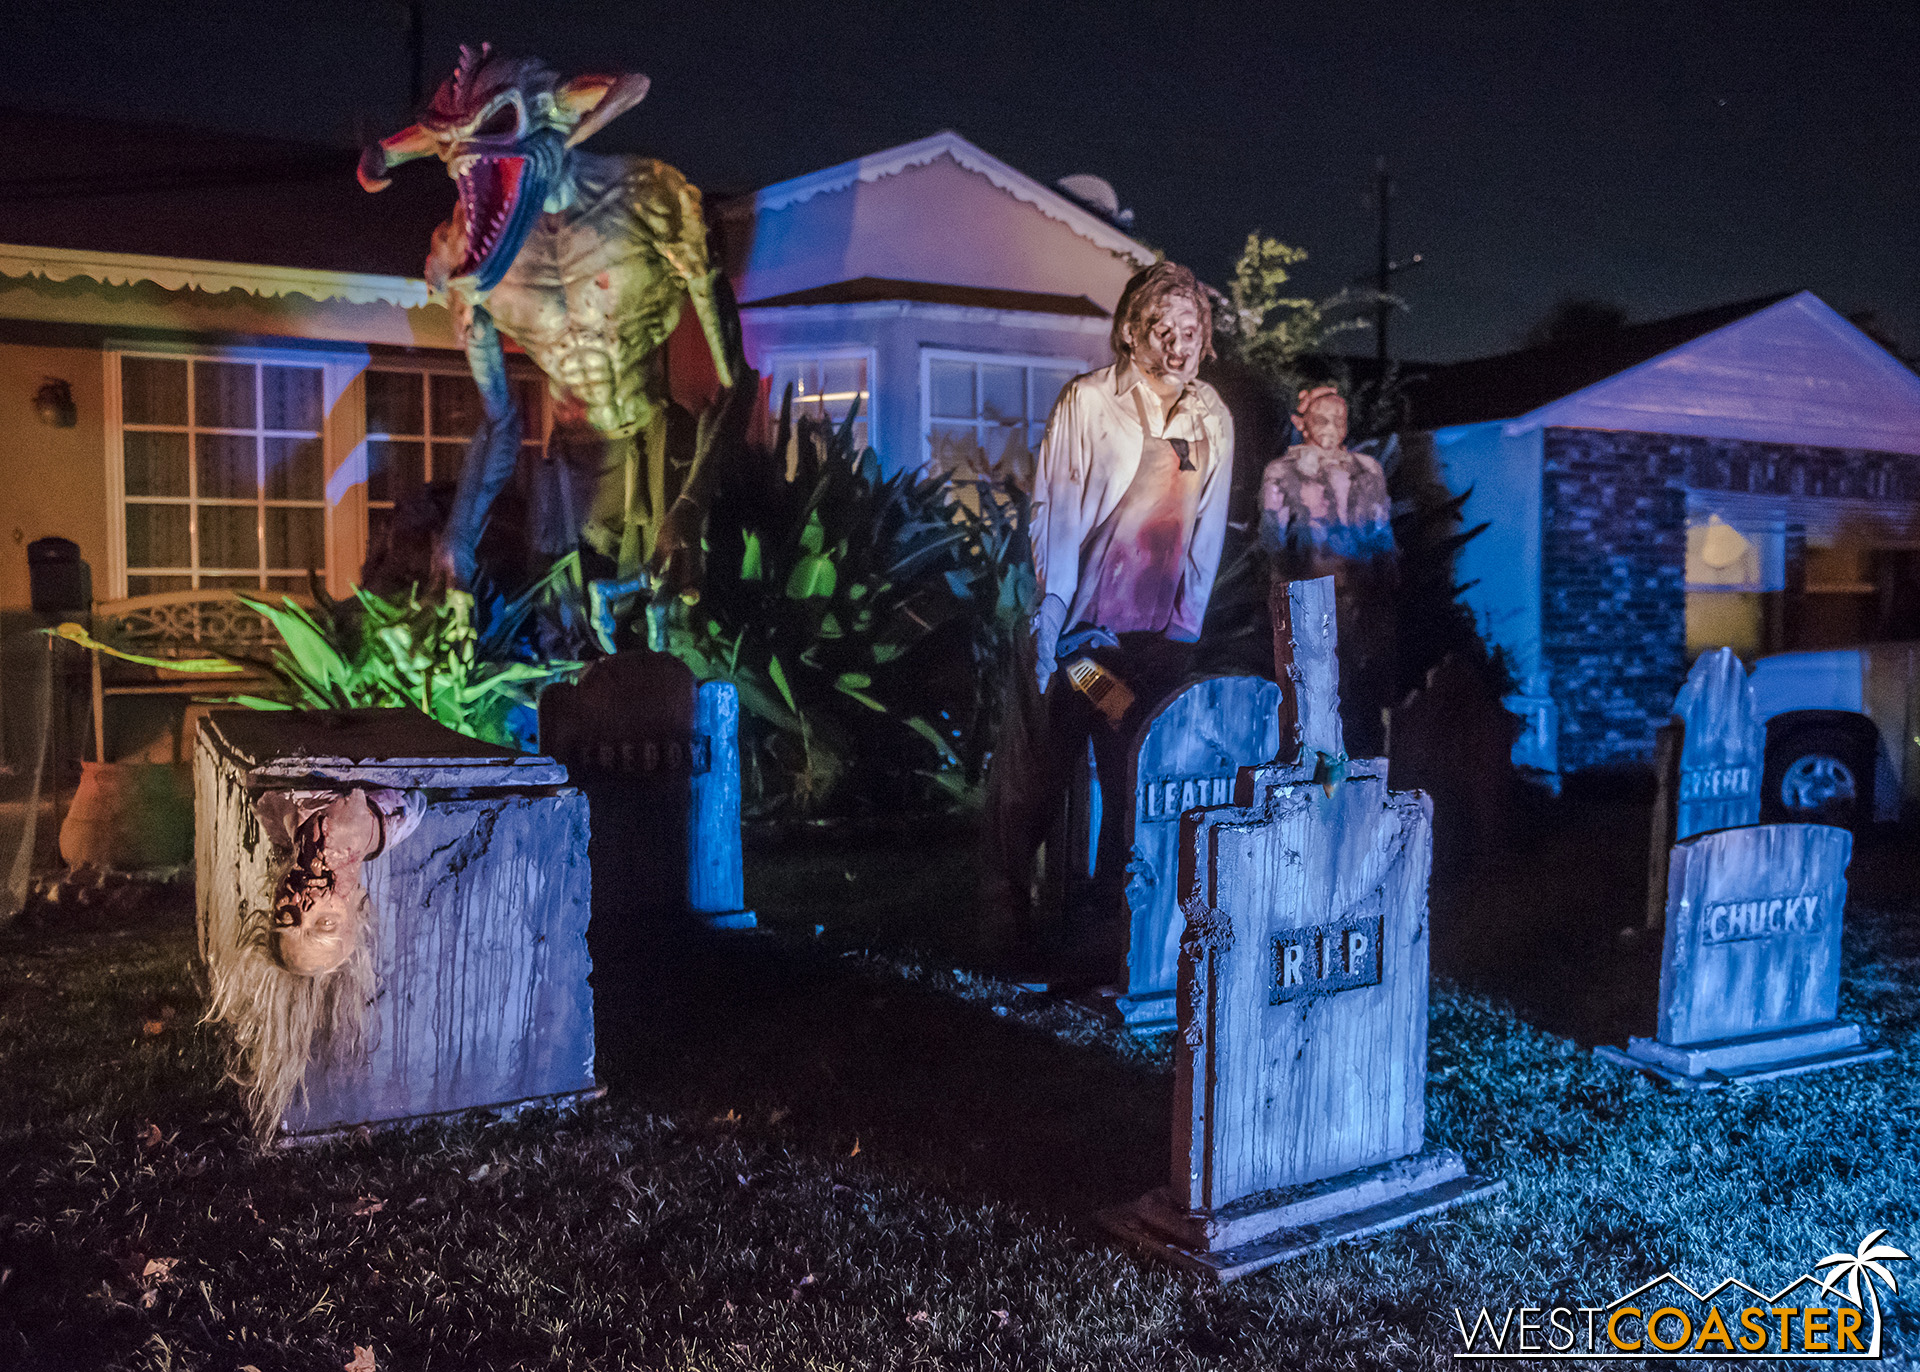 The villain-filled front yard of The Backwoods has some familiar infamous faces.